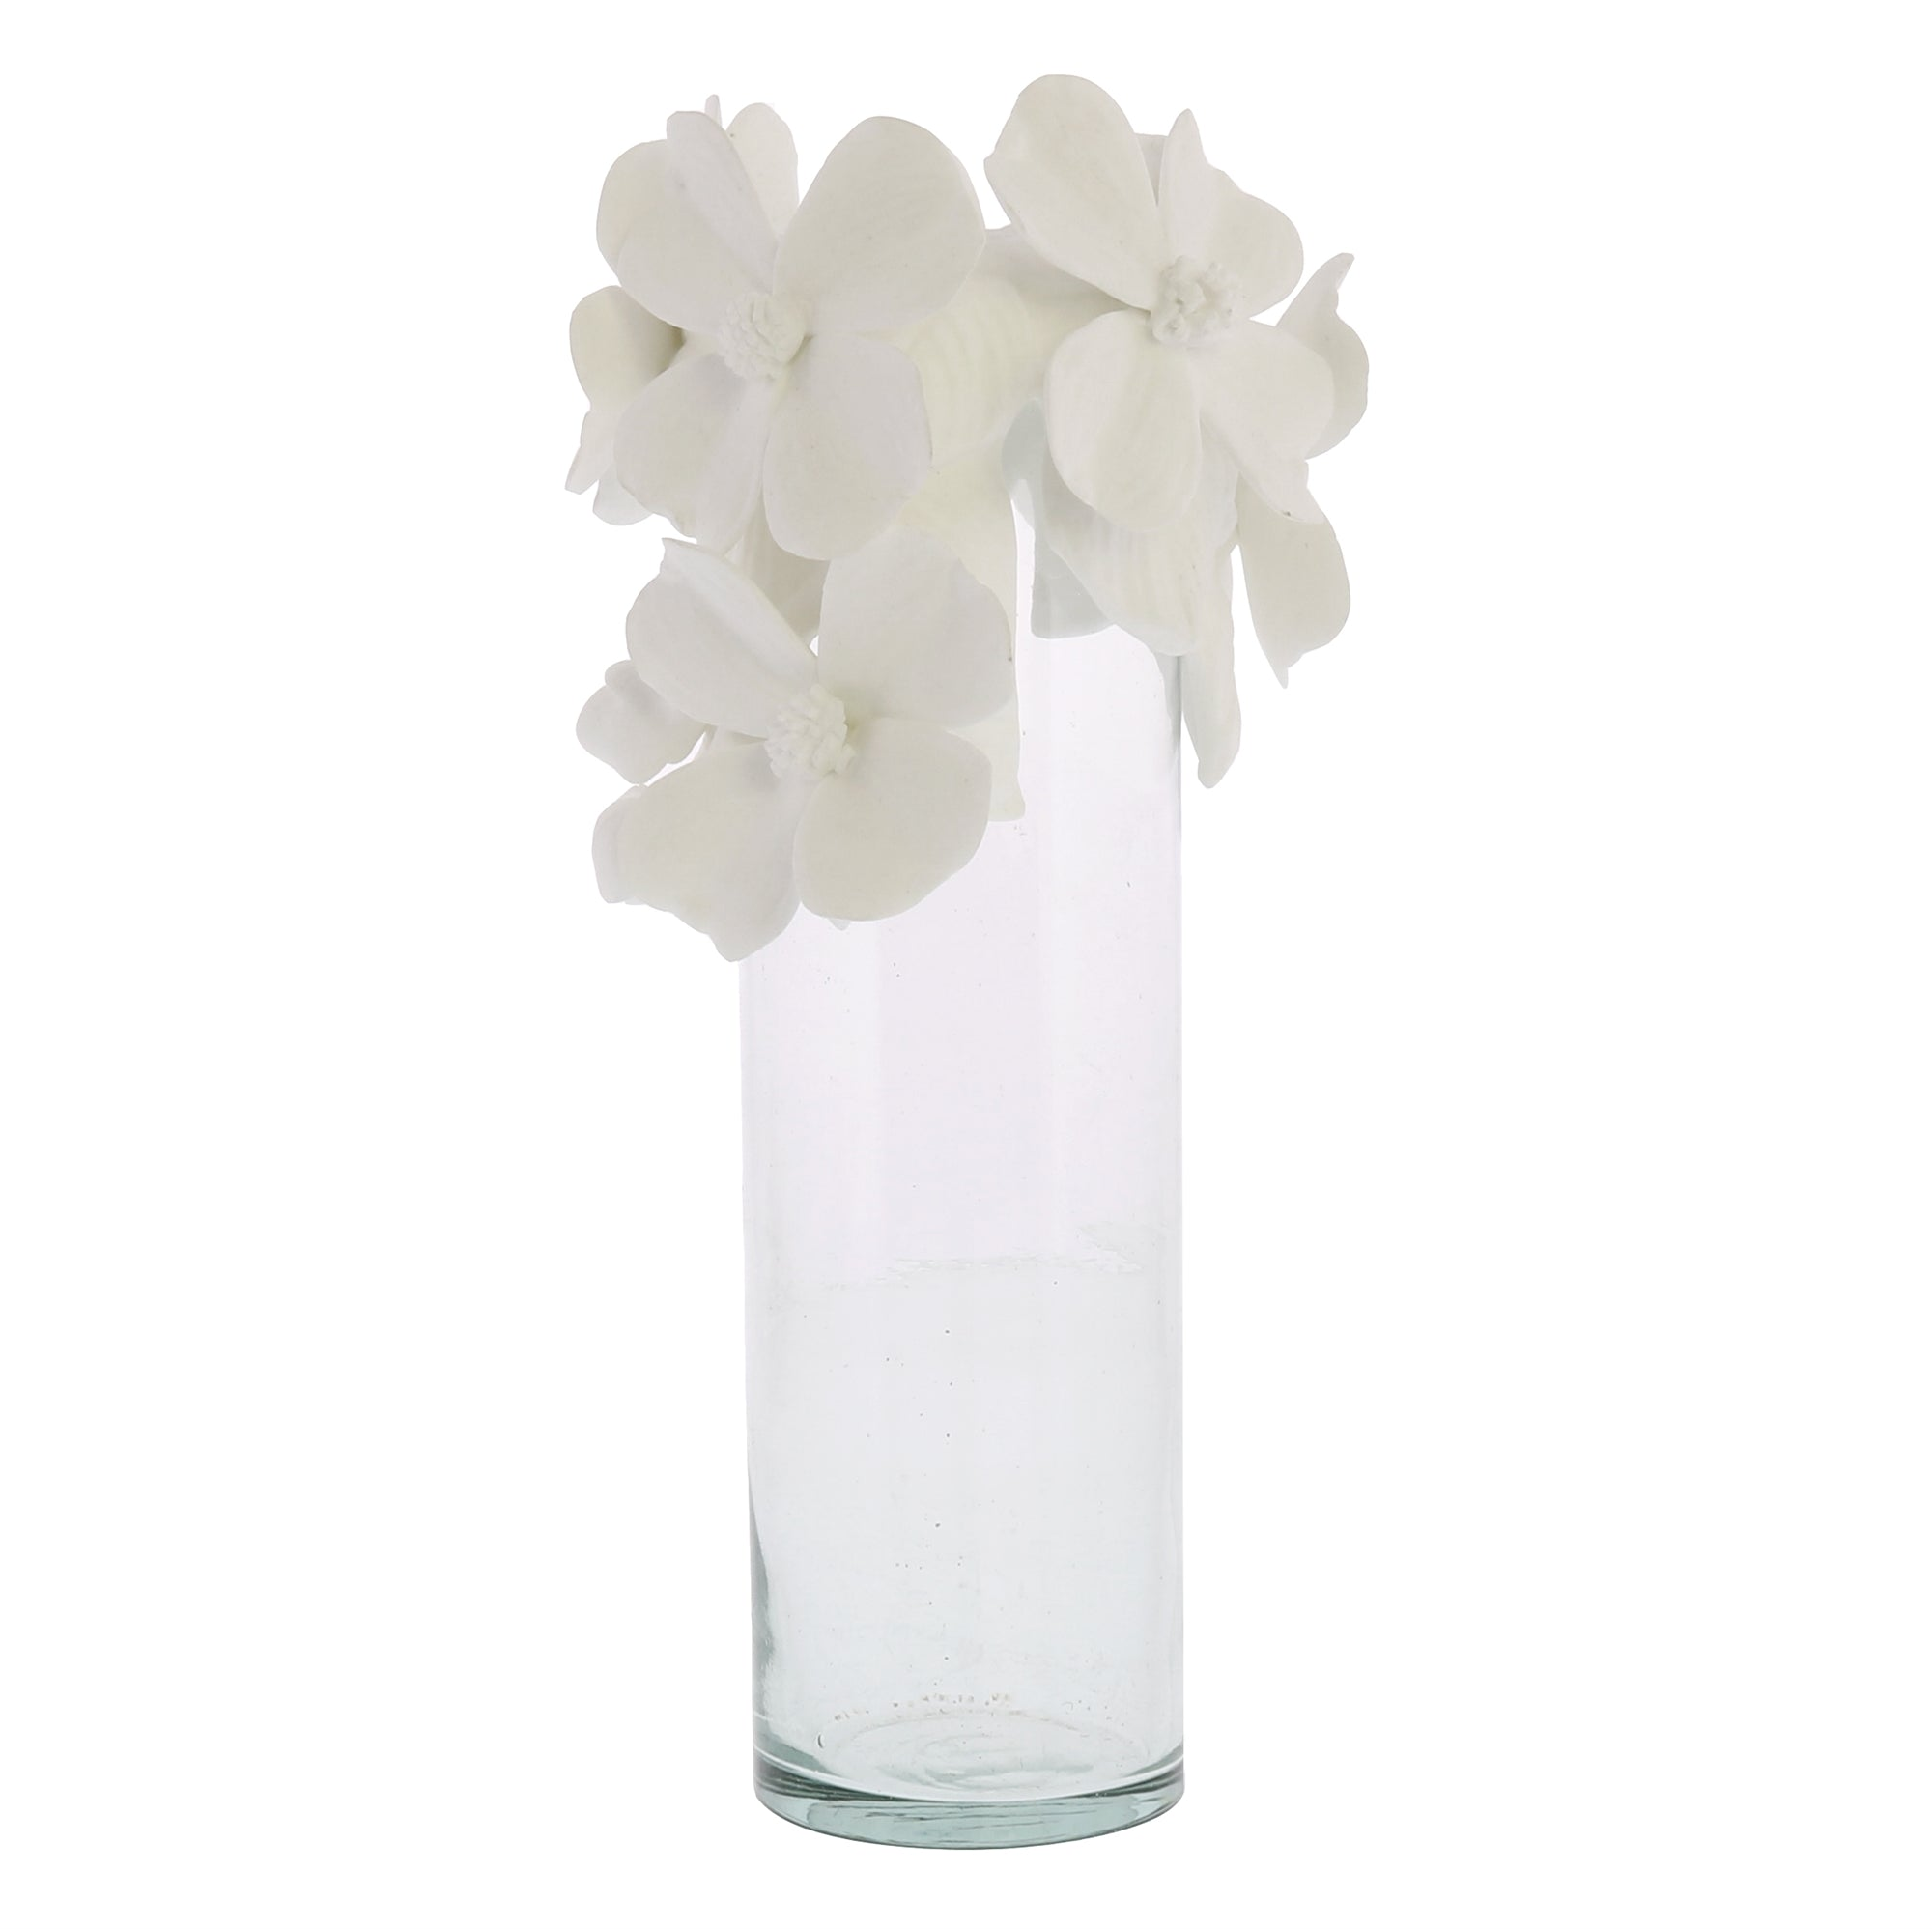 Glass Vase With Flower Crown - CARLYLE AVENUE